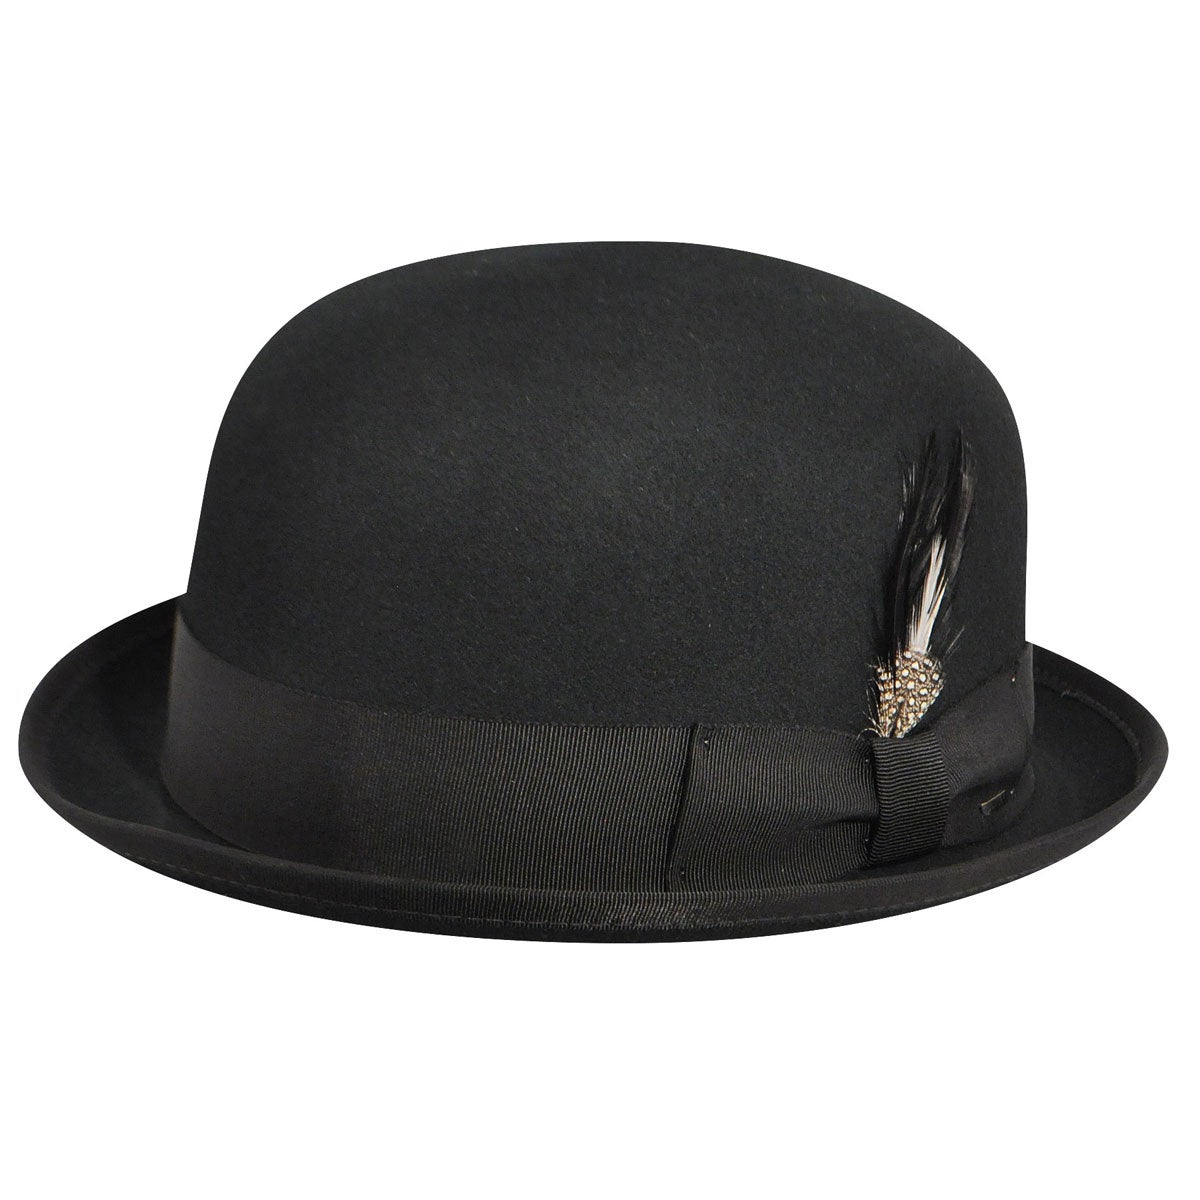 New Edwardian Style Men's Hats 1900-1920 Hollis LiteFelt reg Bowler $95.00 AT vintagedancer.com